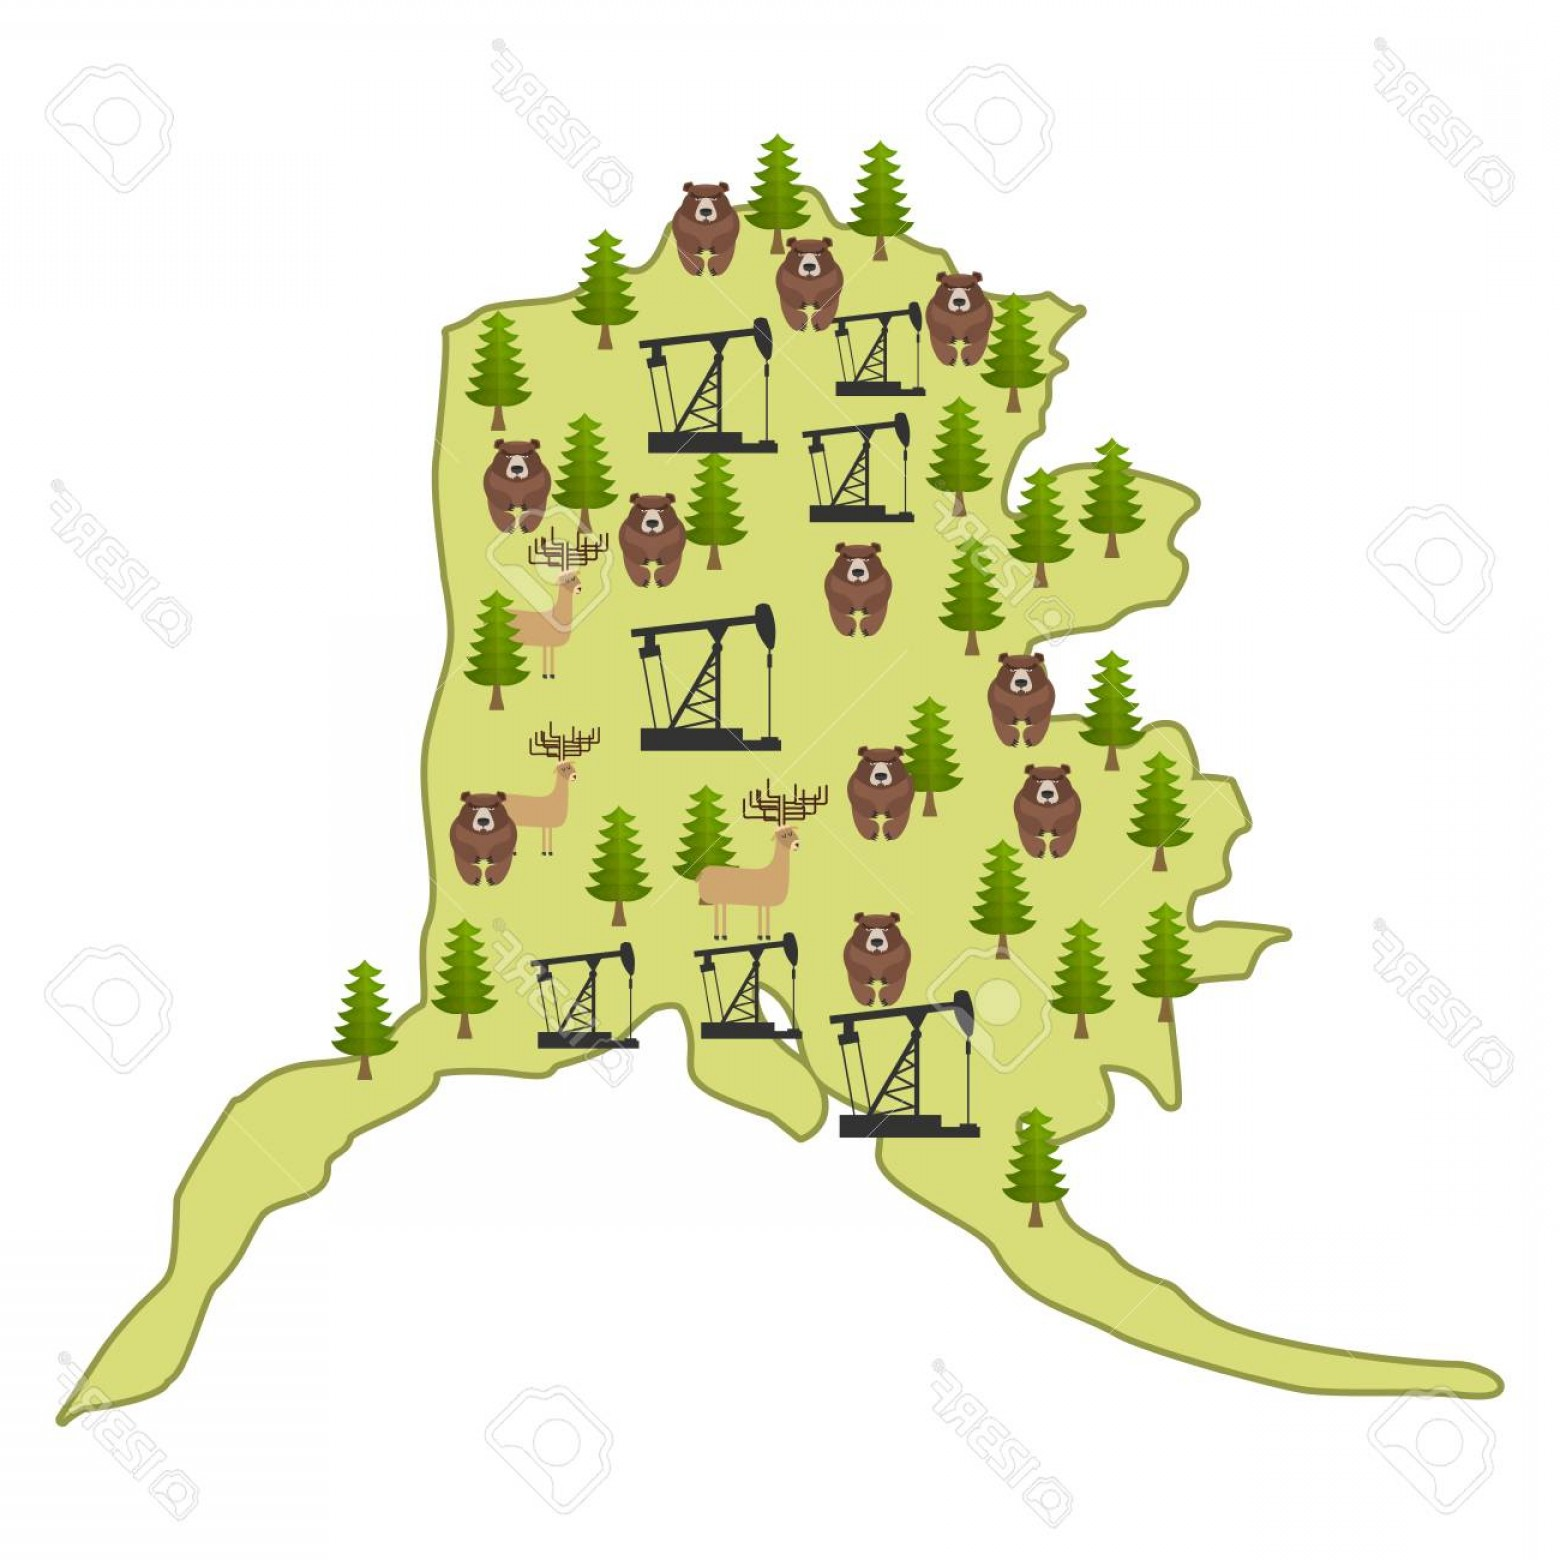 Alaska Moose Vectors: Photostock Vector Alaska Map Isolated Moose And Bear Forest And Oil Rig